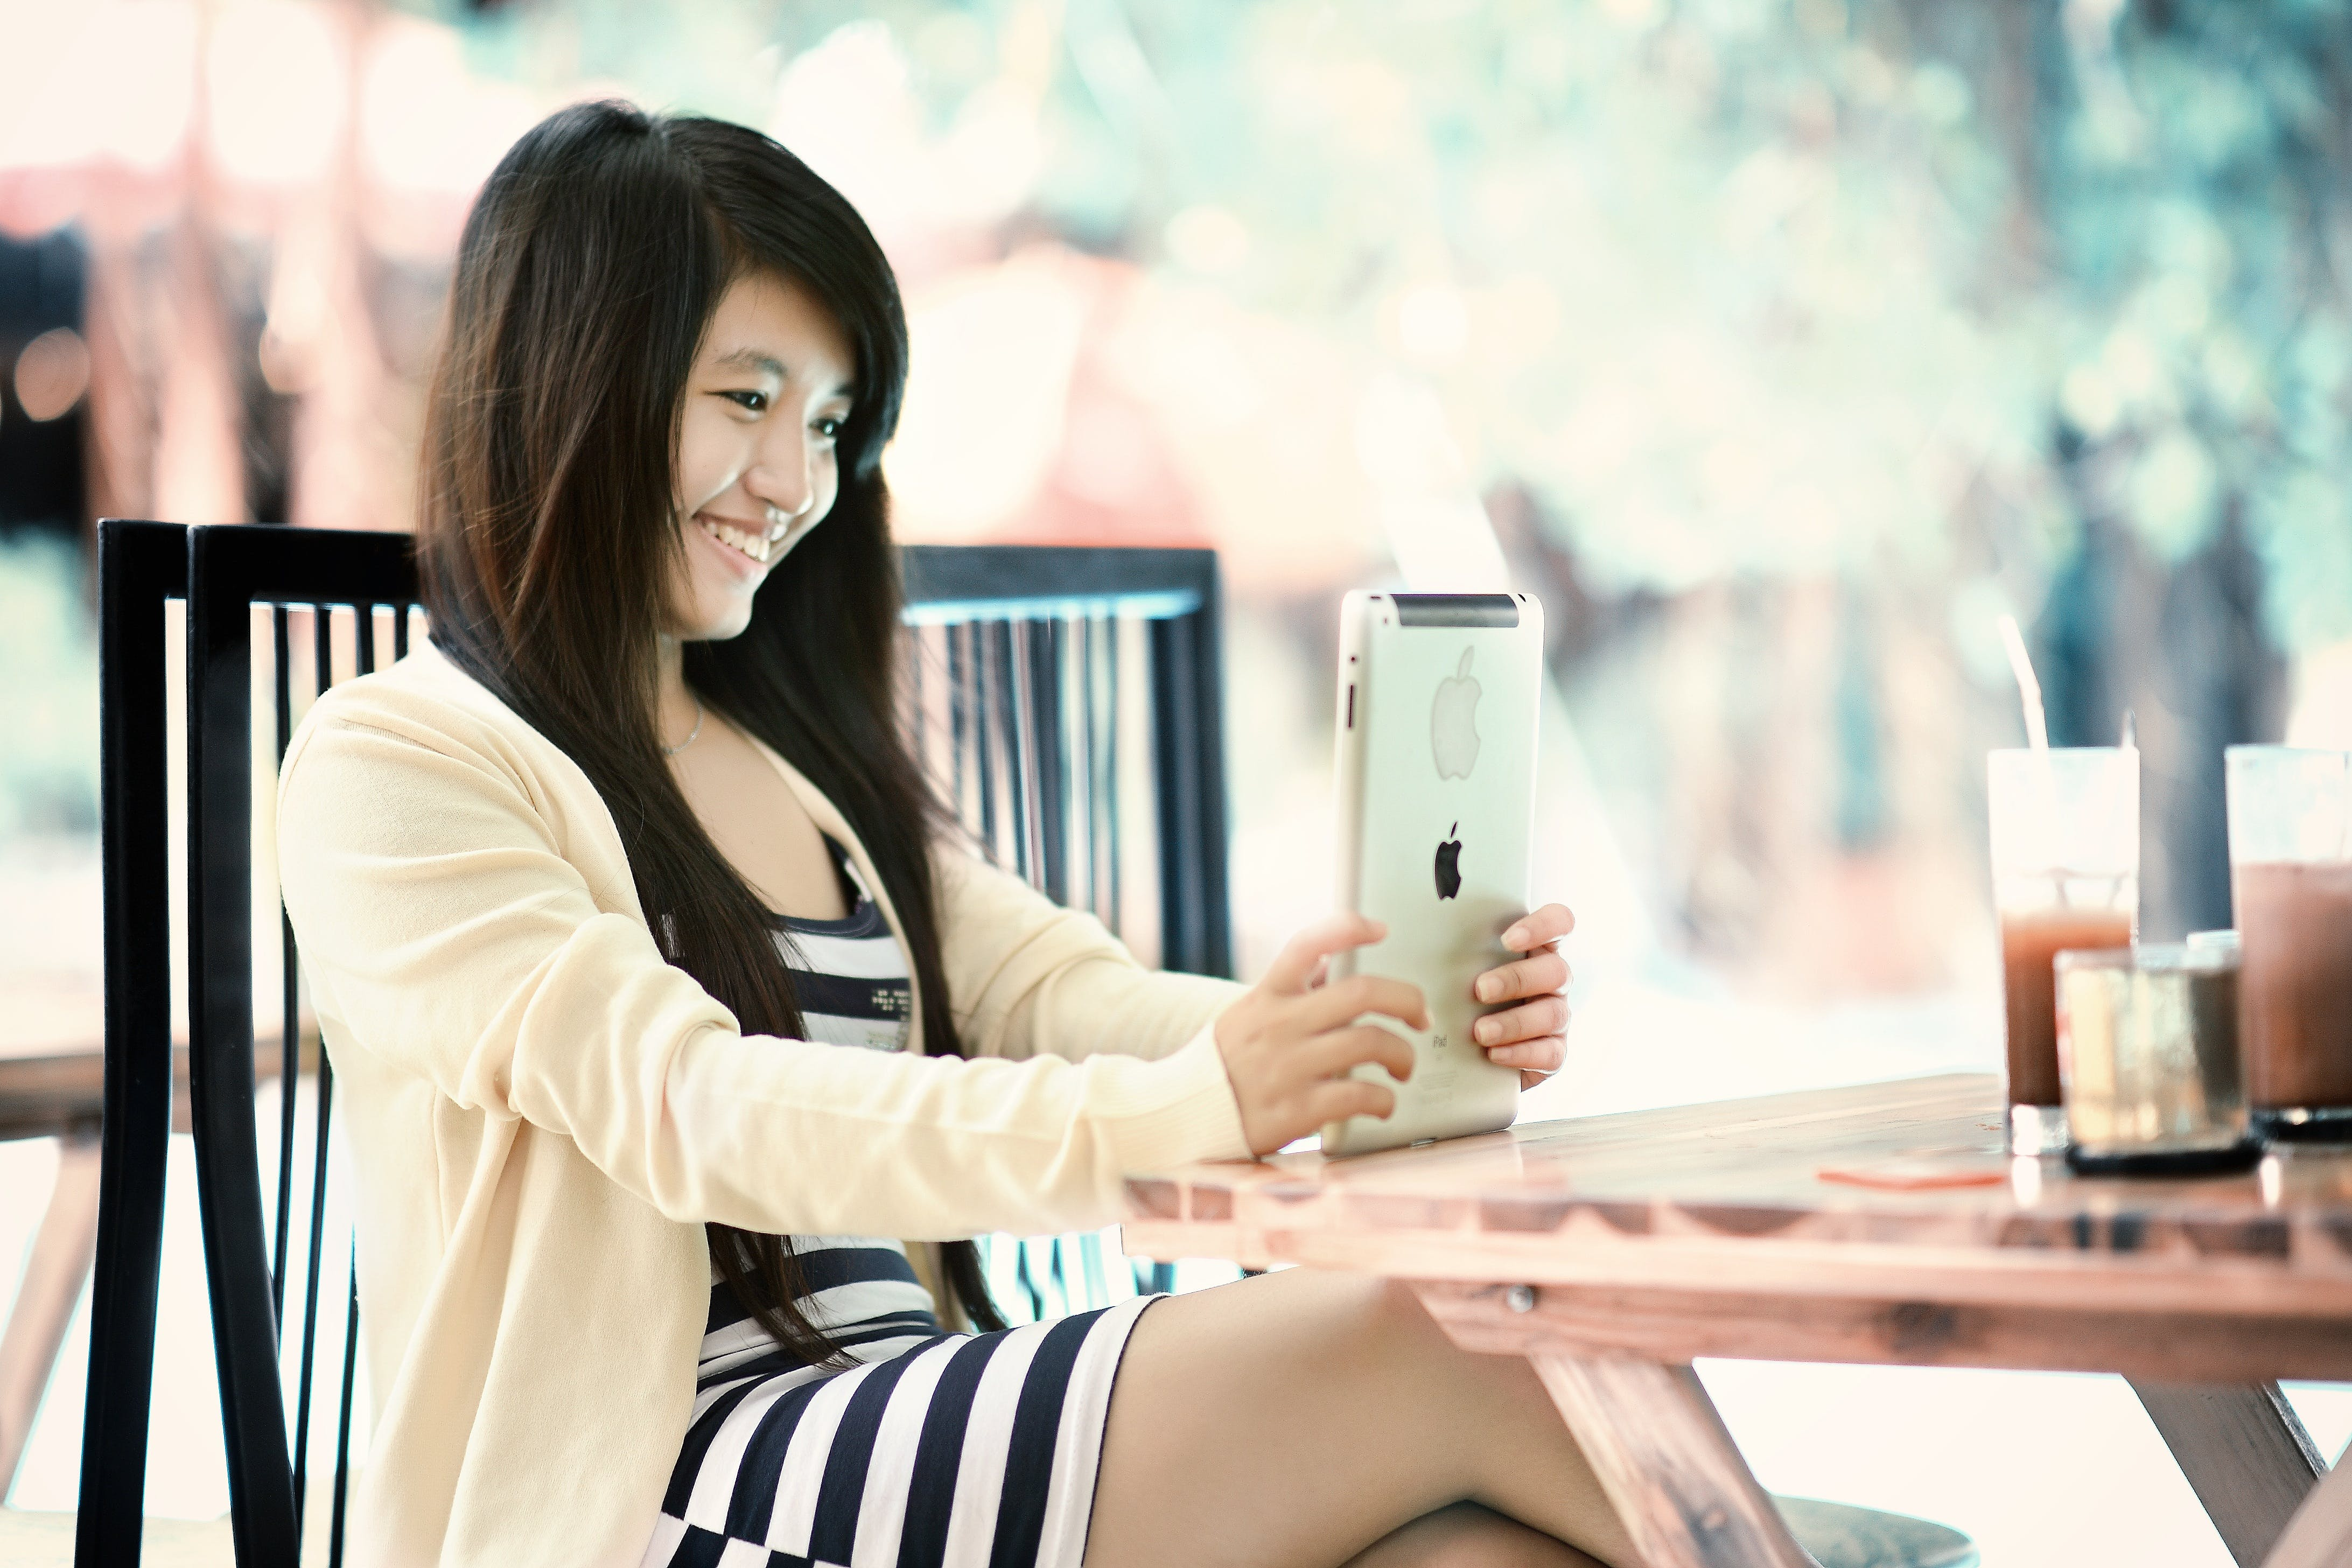 Woman Smiling While Sitting in Front of Table and Using Gold Ipad